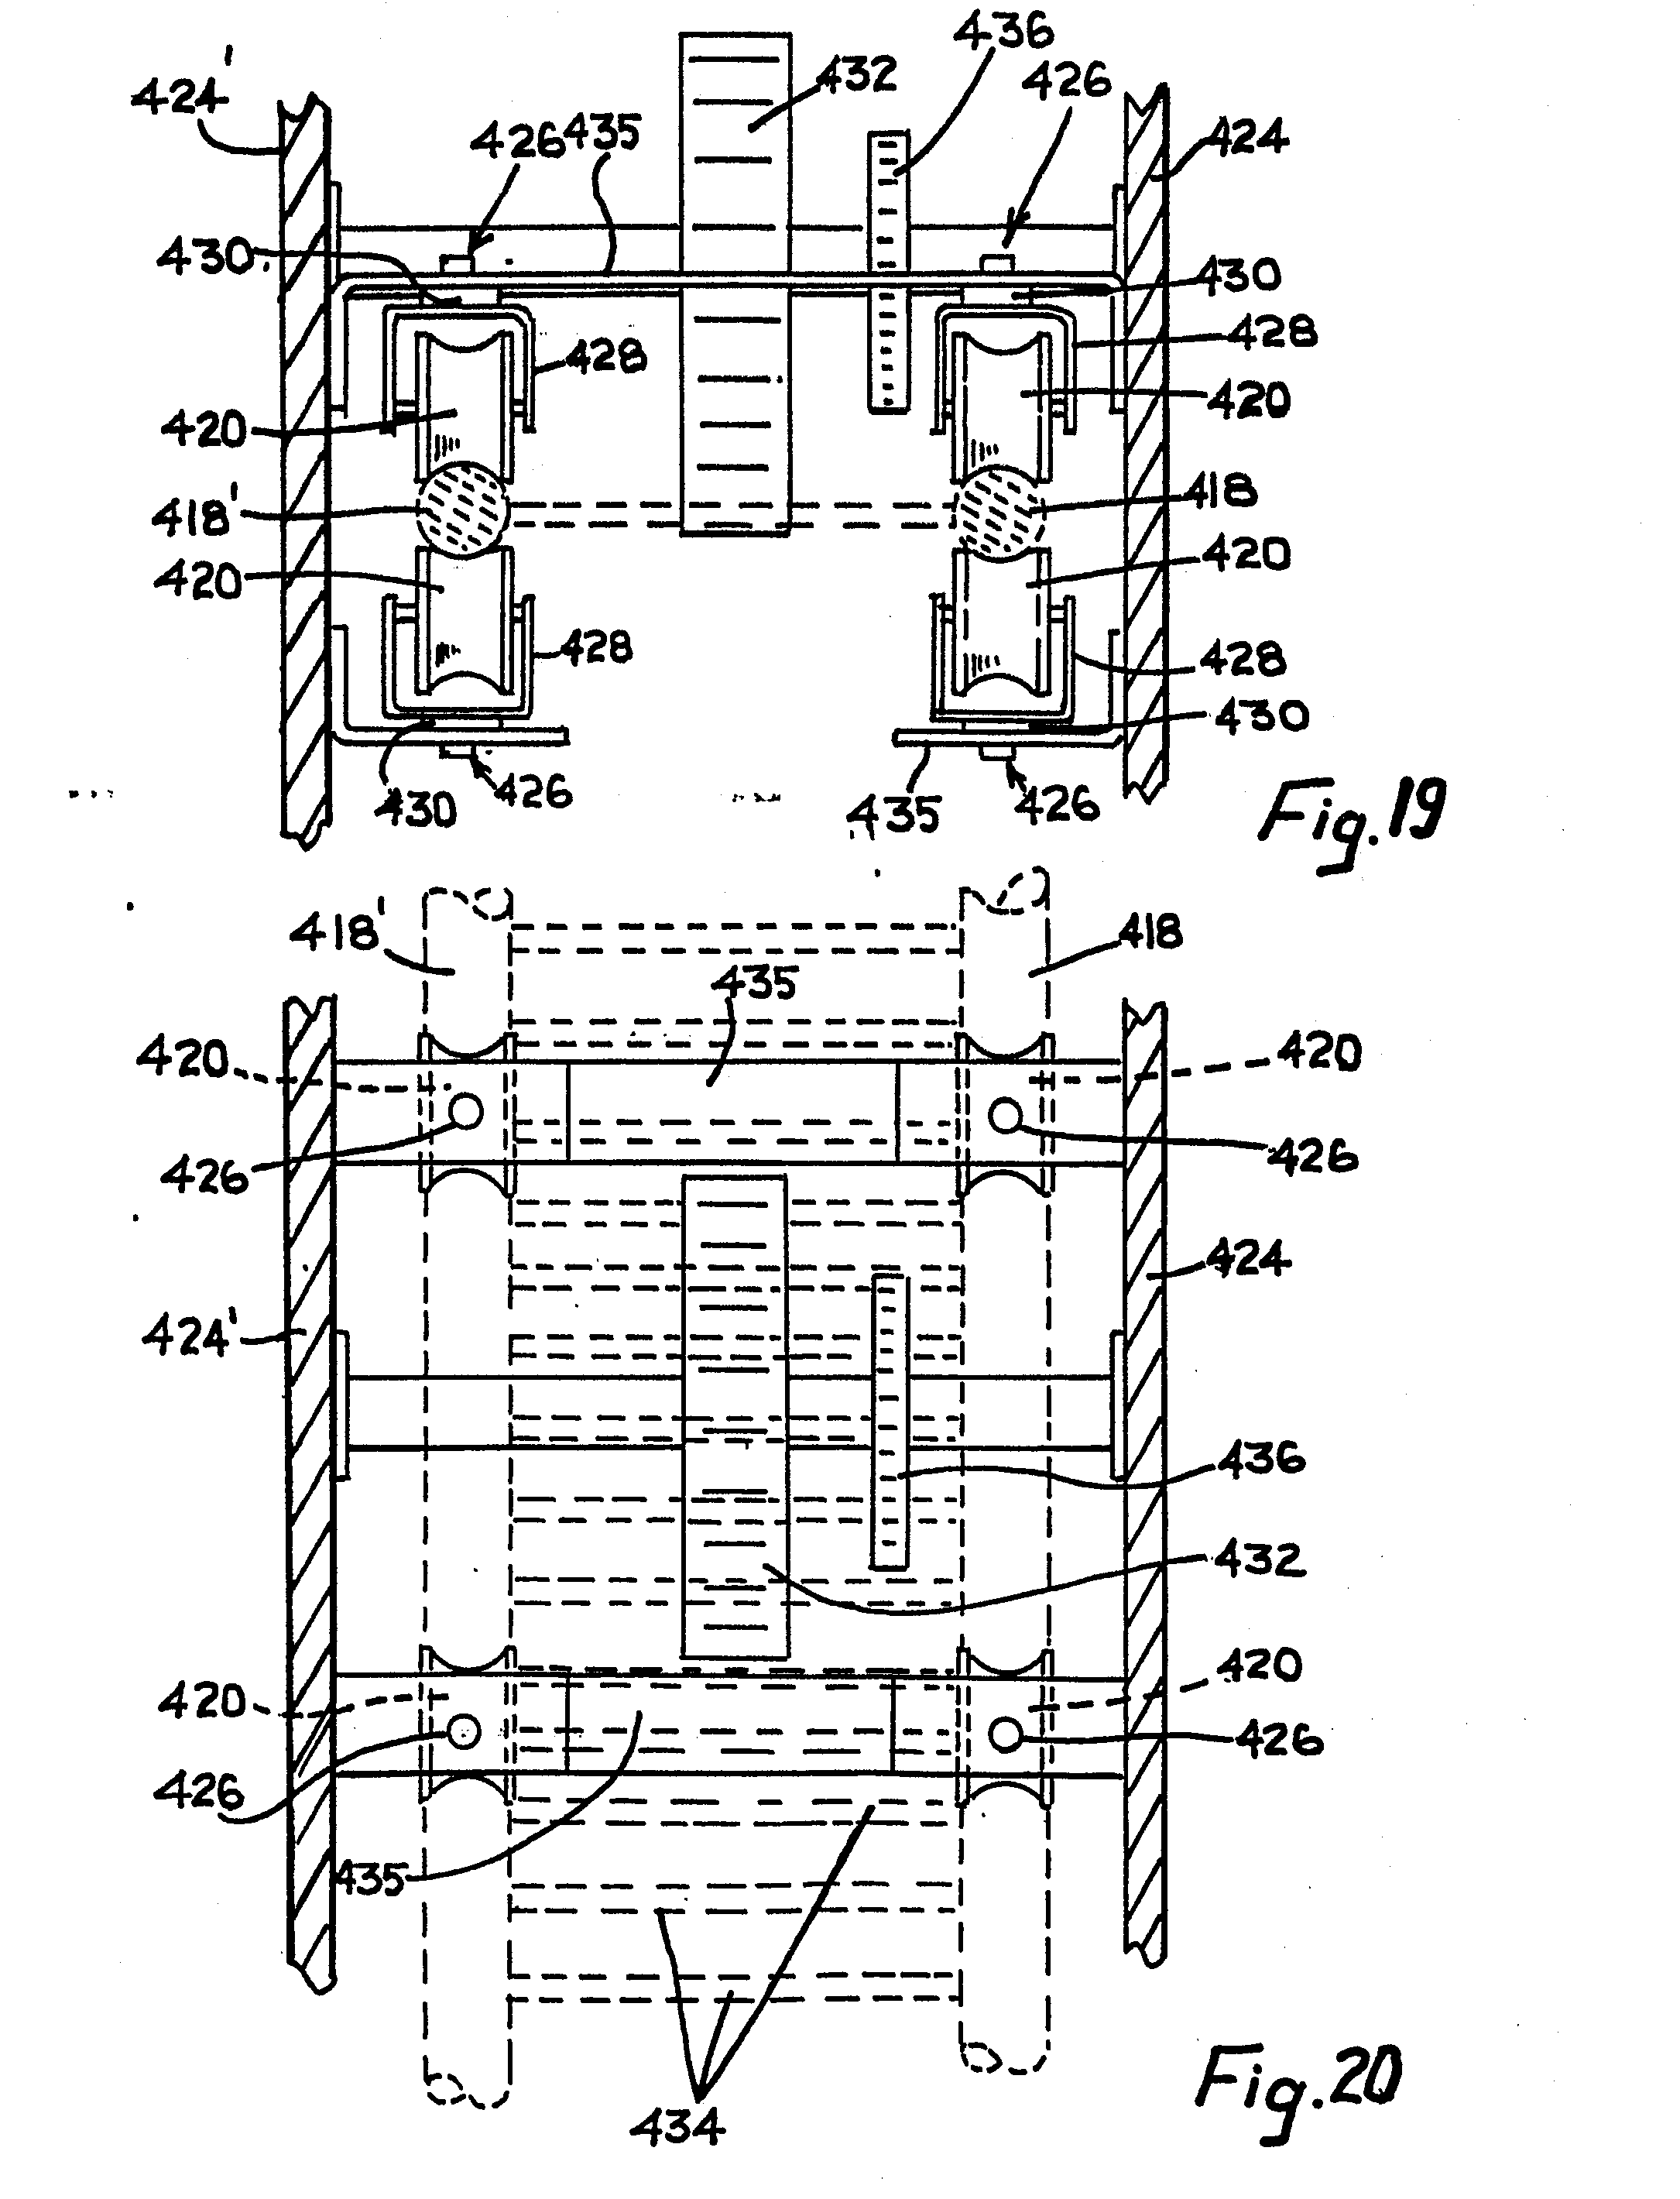 imgf0017 patent ep0137577a1 a stair lift google patents stannah 300 wiring diagram at bayanpartner.co